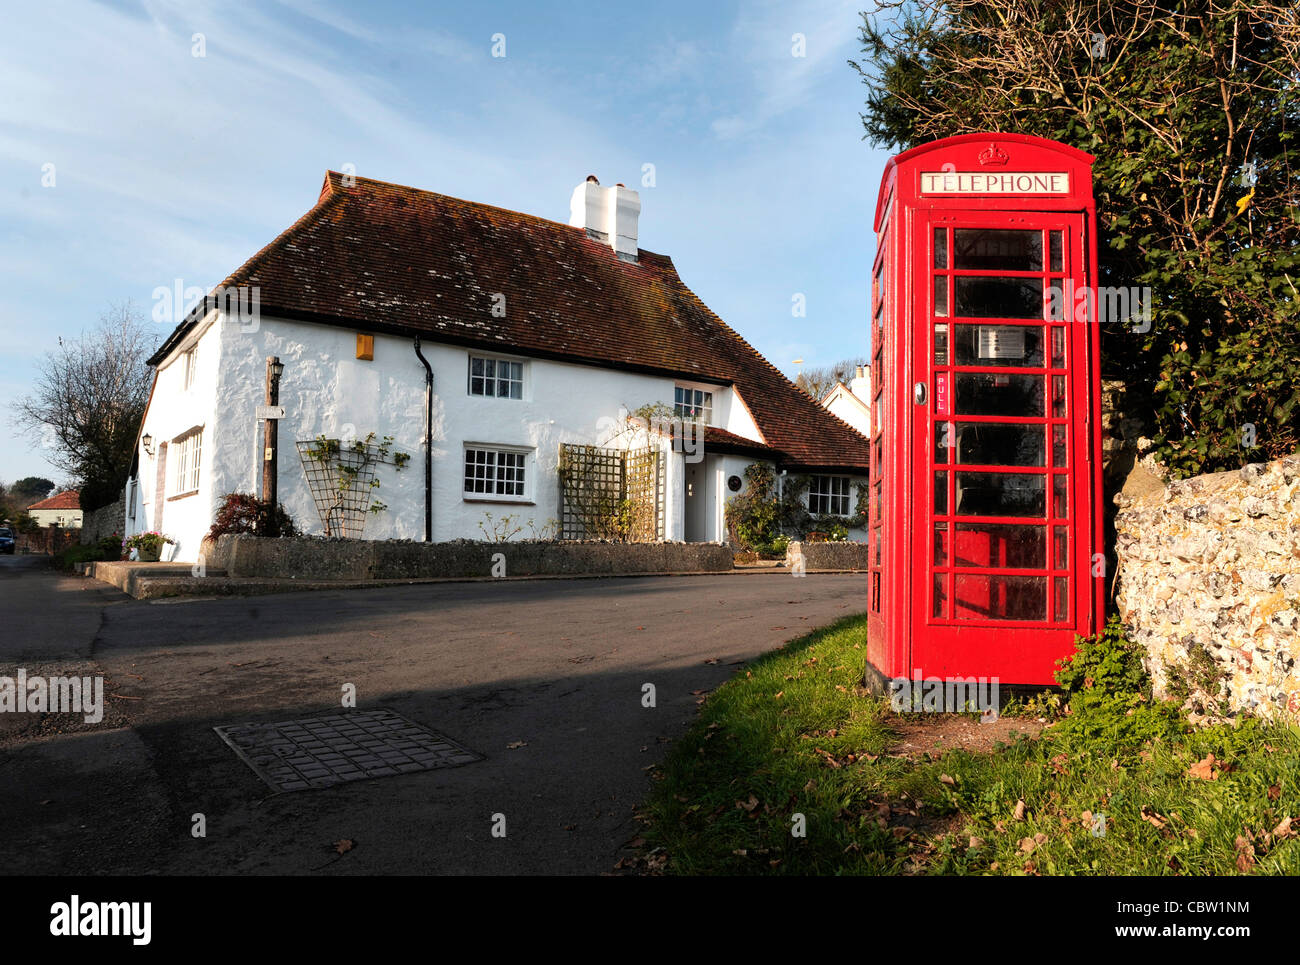 Red telephone box in Piddinghoe village, East Sussex - Stock Image